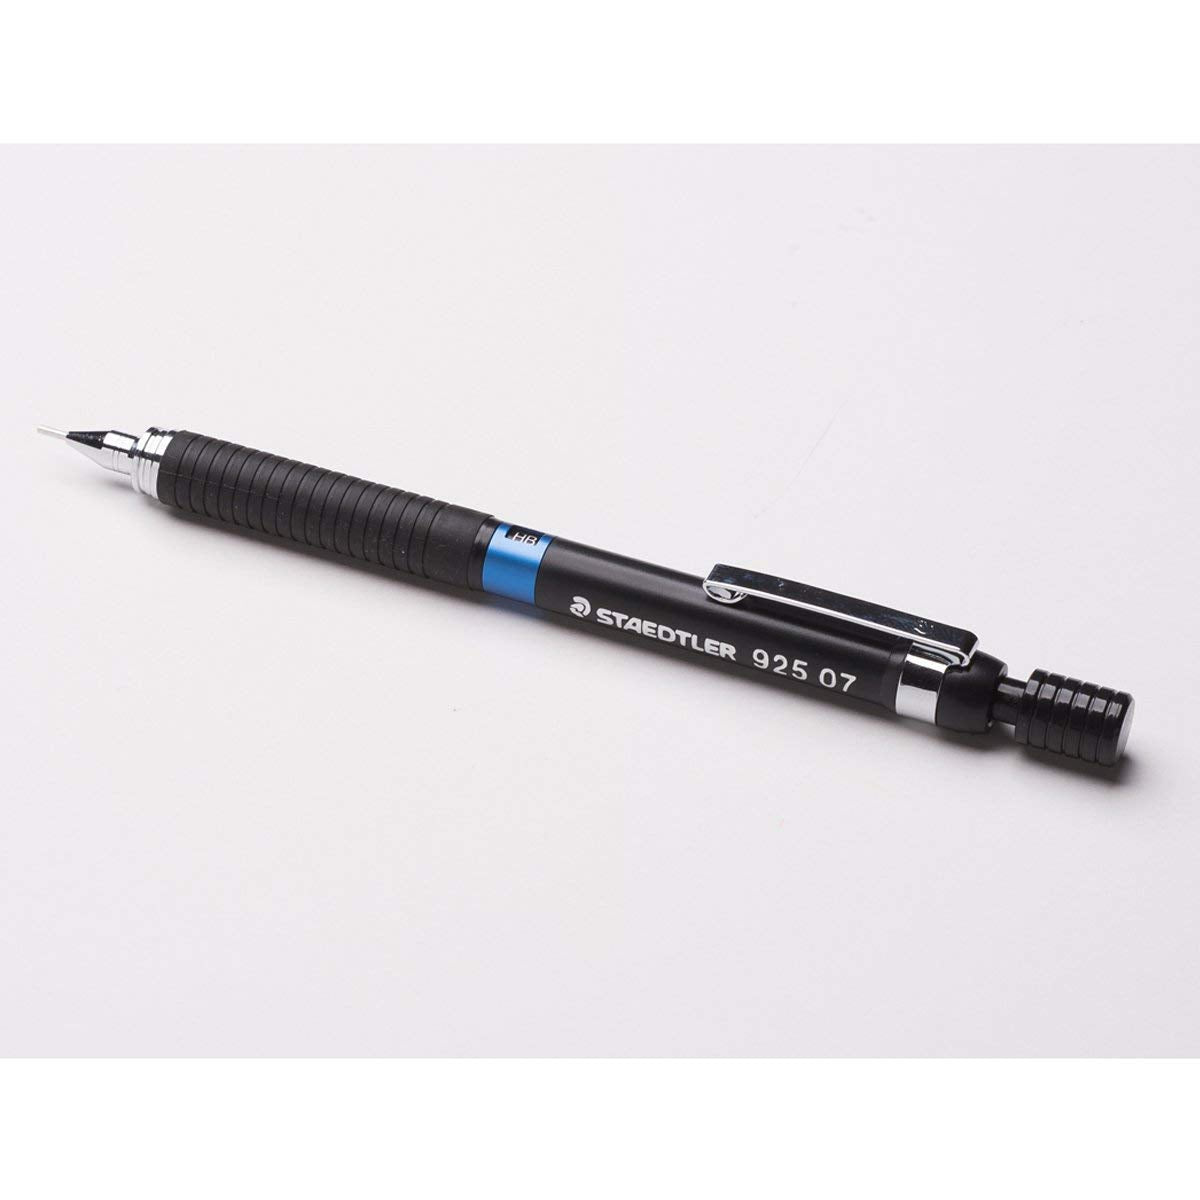 Staedtler Mechanical Pencil, 0.7mm (925 07)